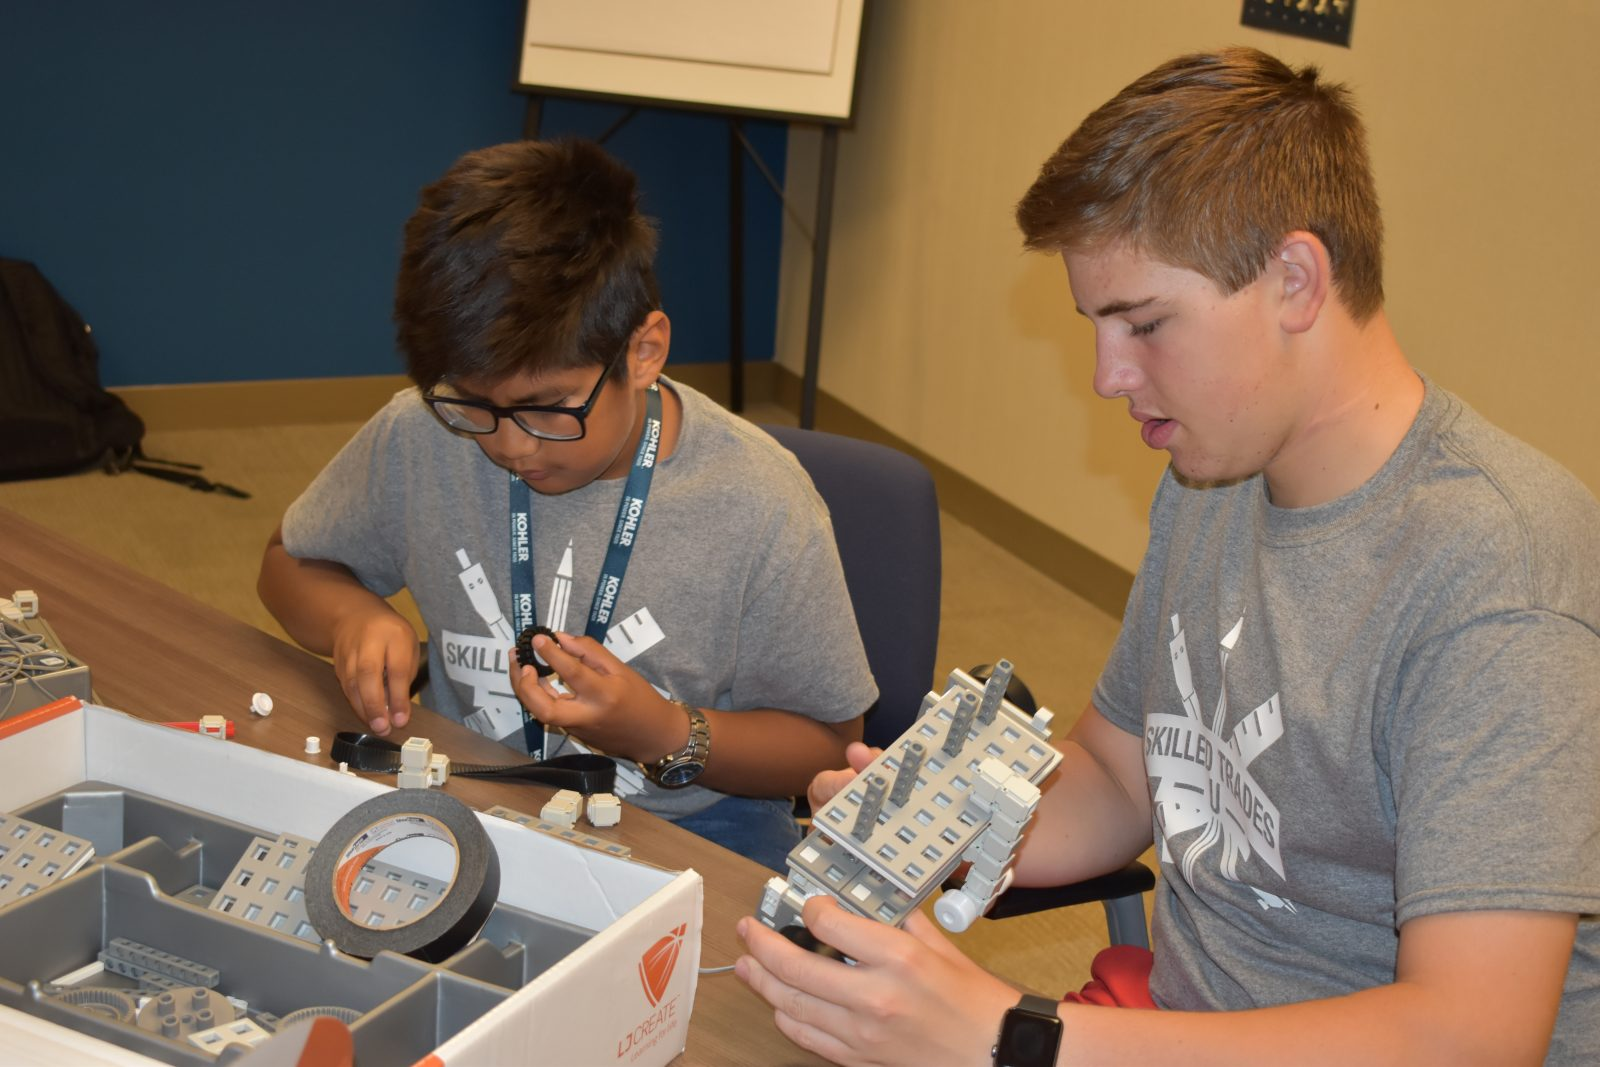 Students problem solve with their LJ Create vehicle at the Kohler Skilled Trades Camp